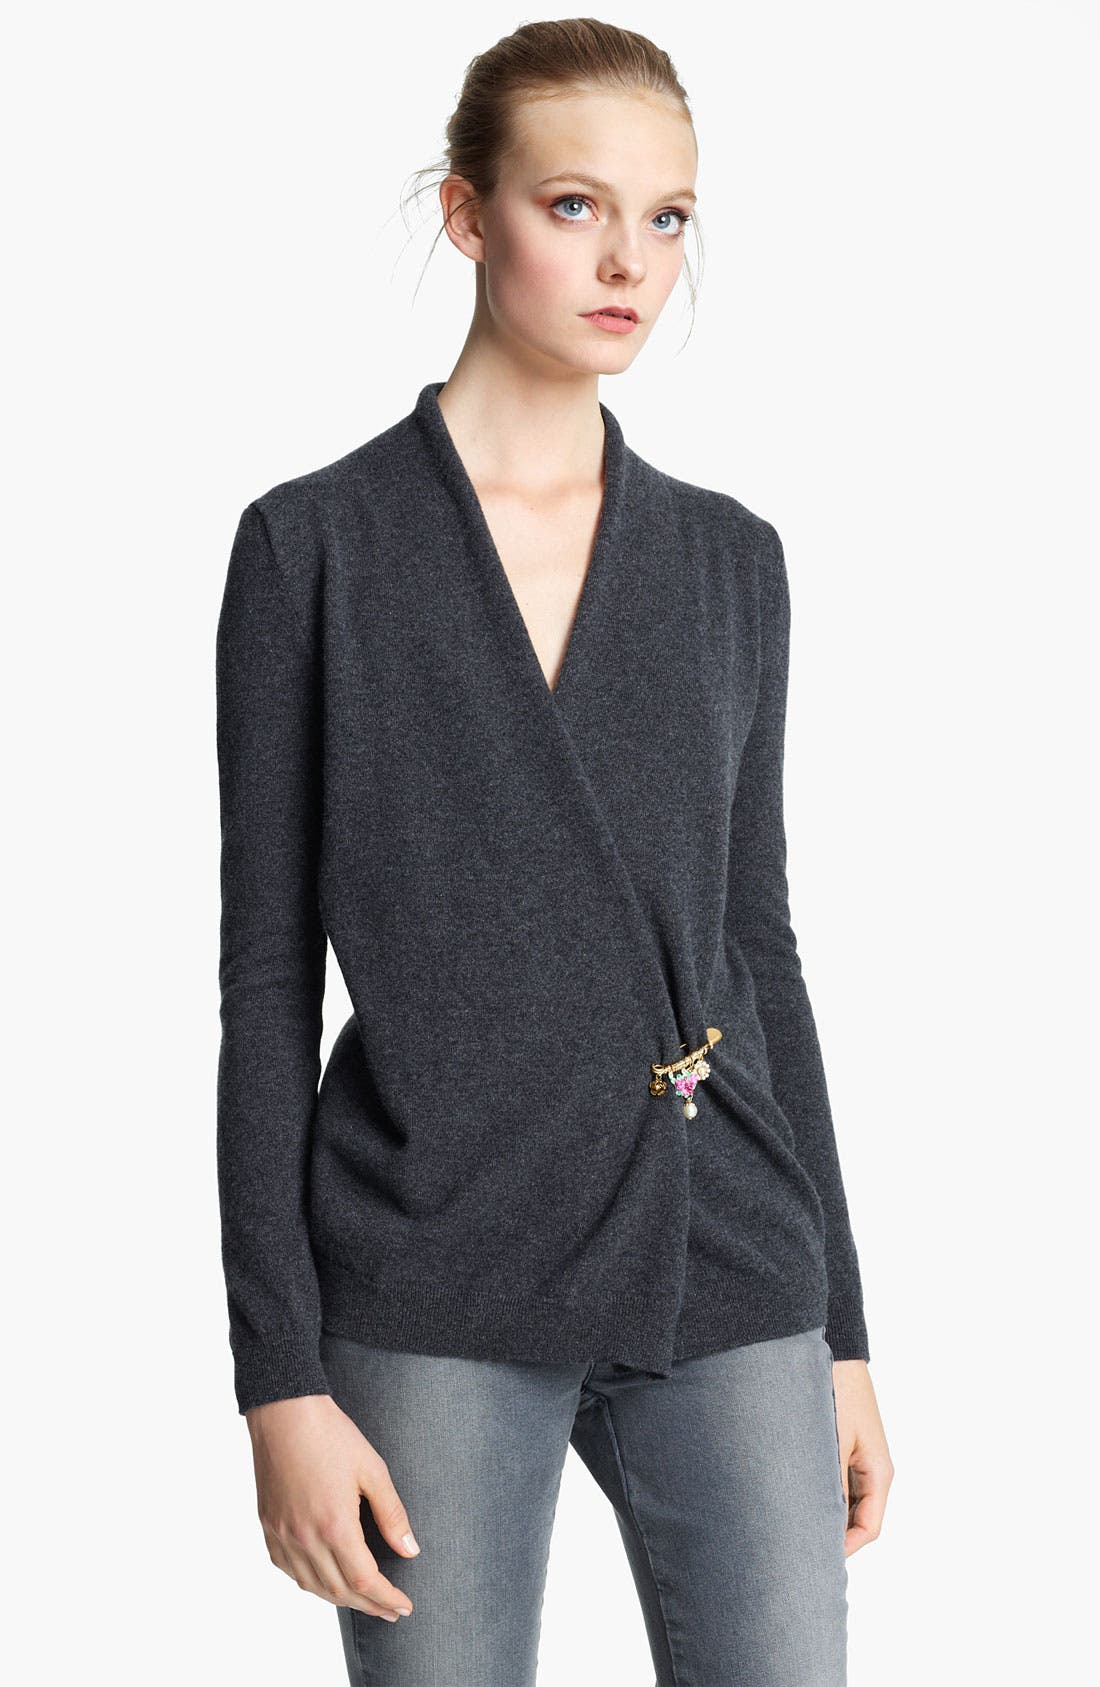 Alternate Image 1 Selected - Dolce&Gabbana Cashmere Cardigan with Embellished Pin